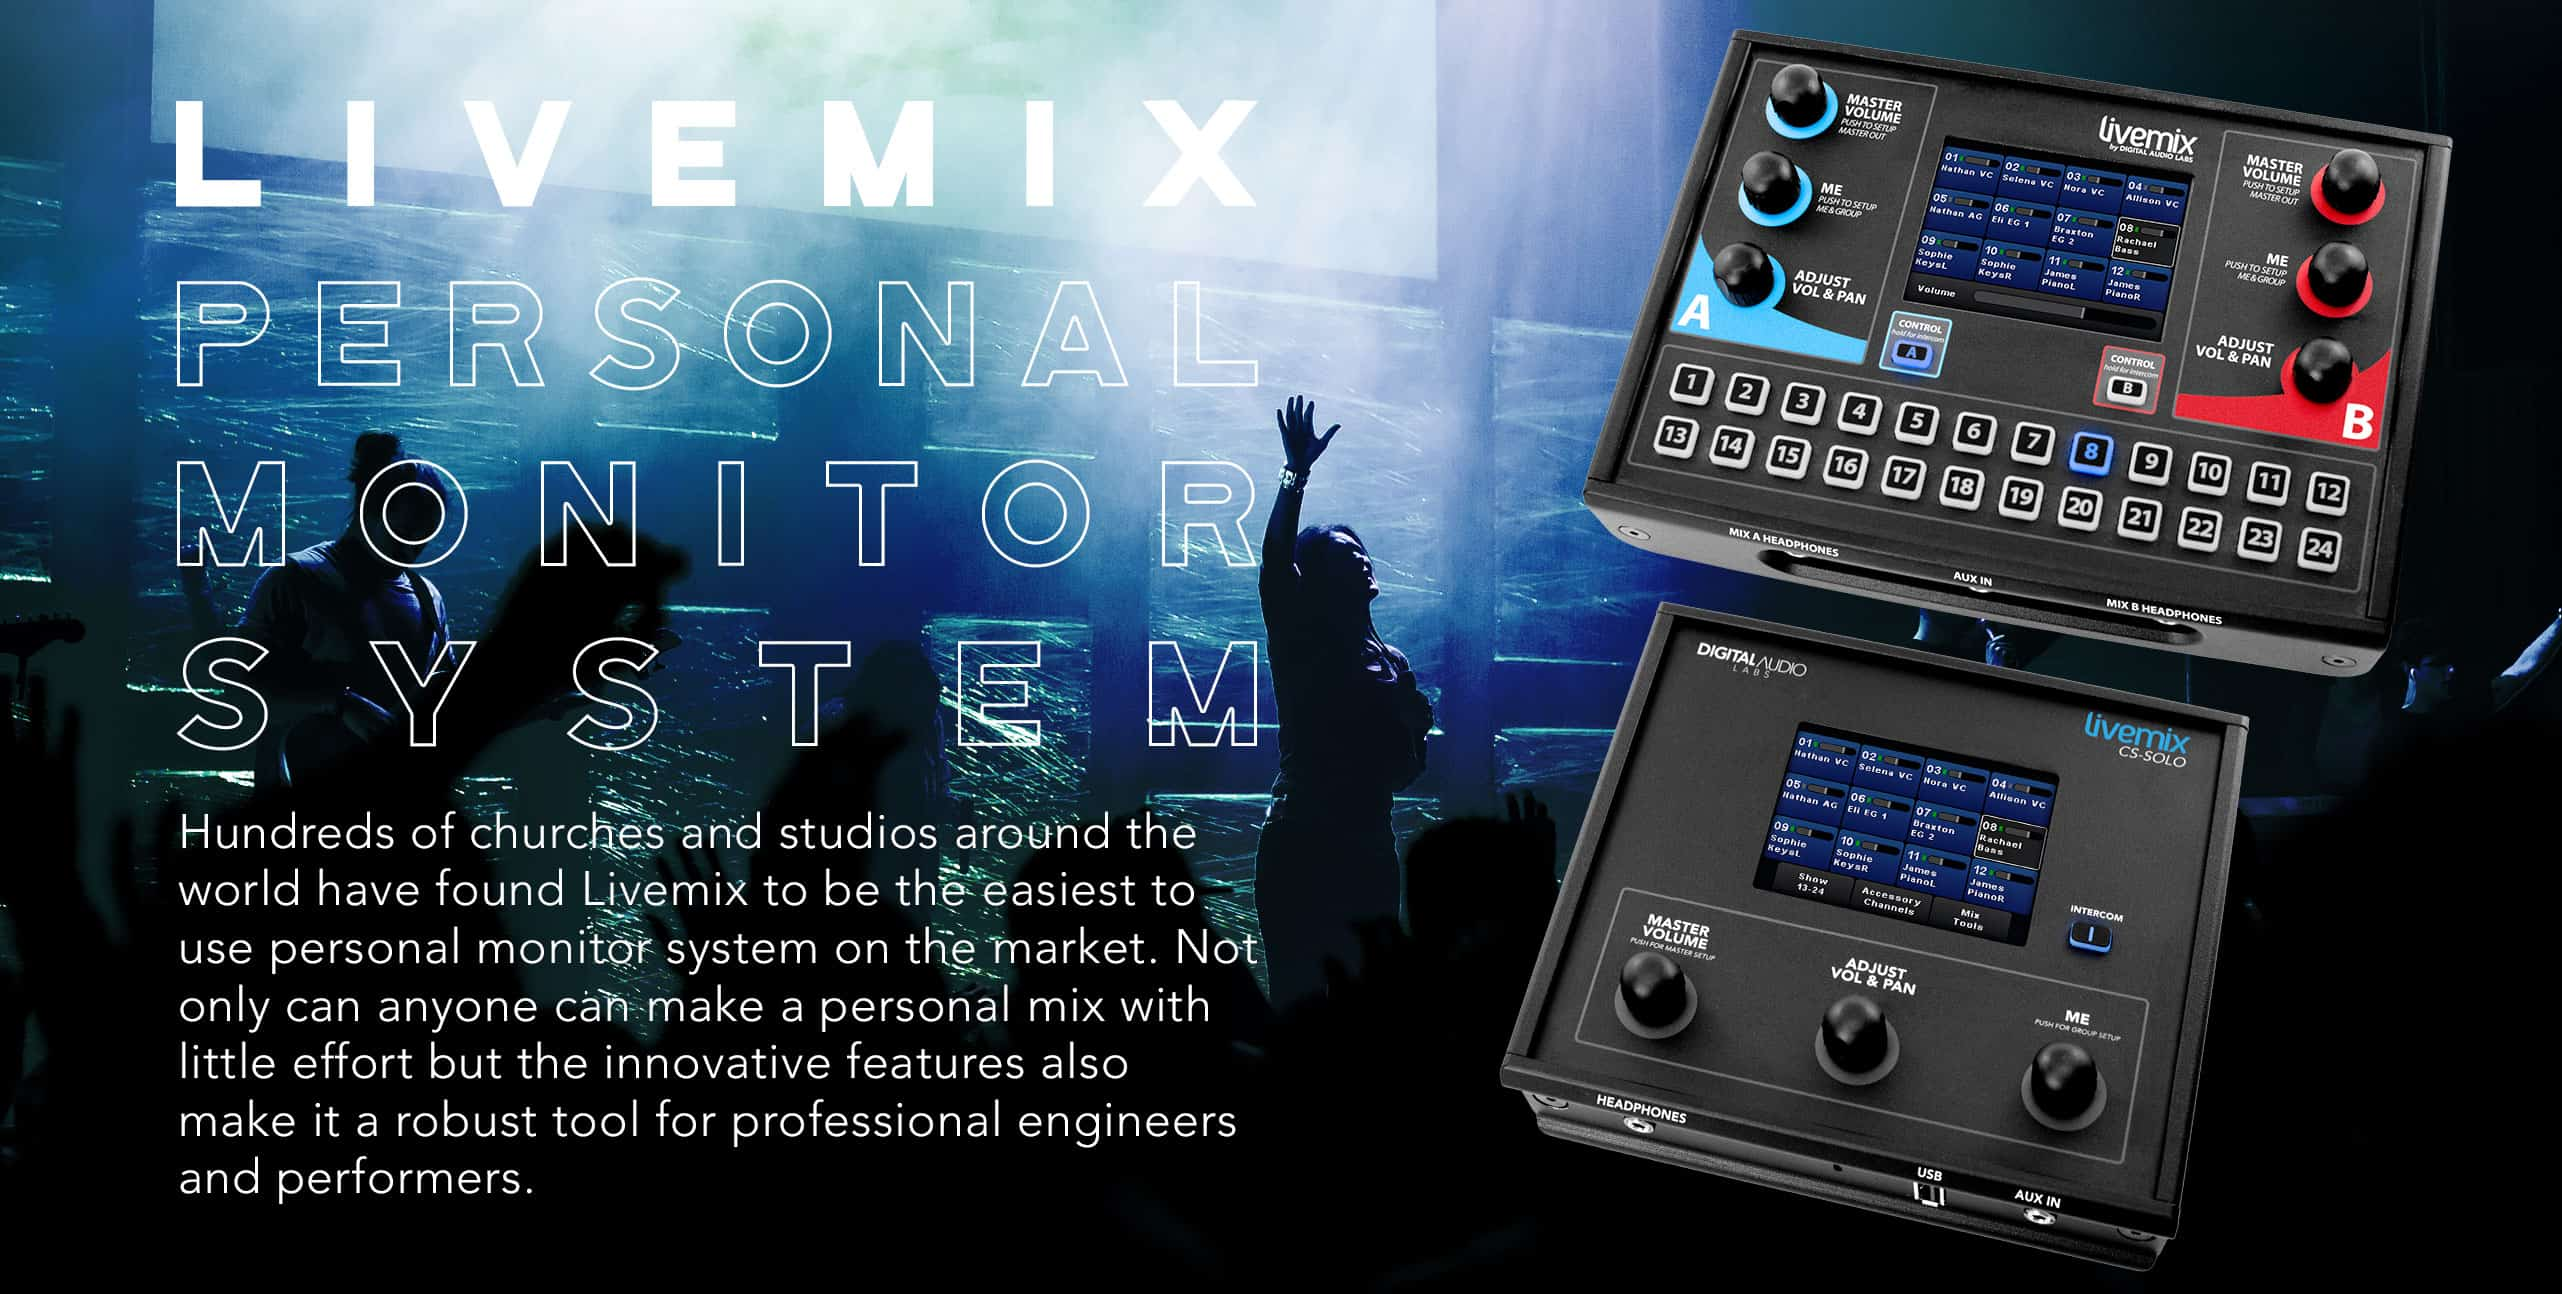 Livemix Personal Monitor System - The easy to use personal mixers for church and studio